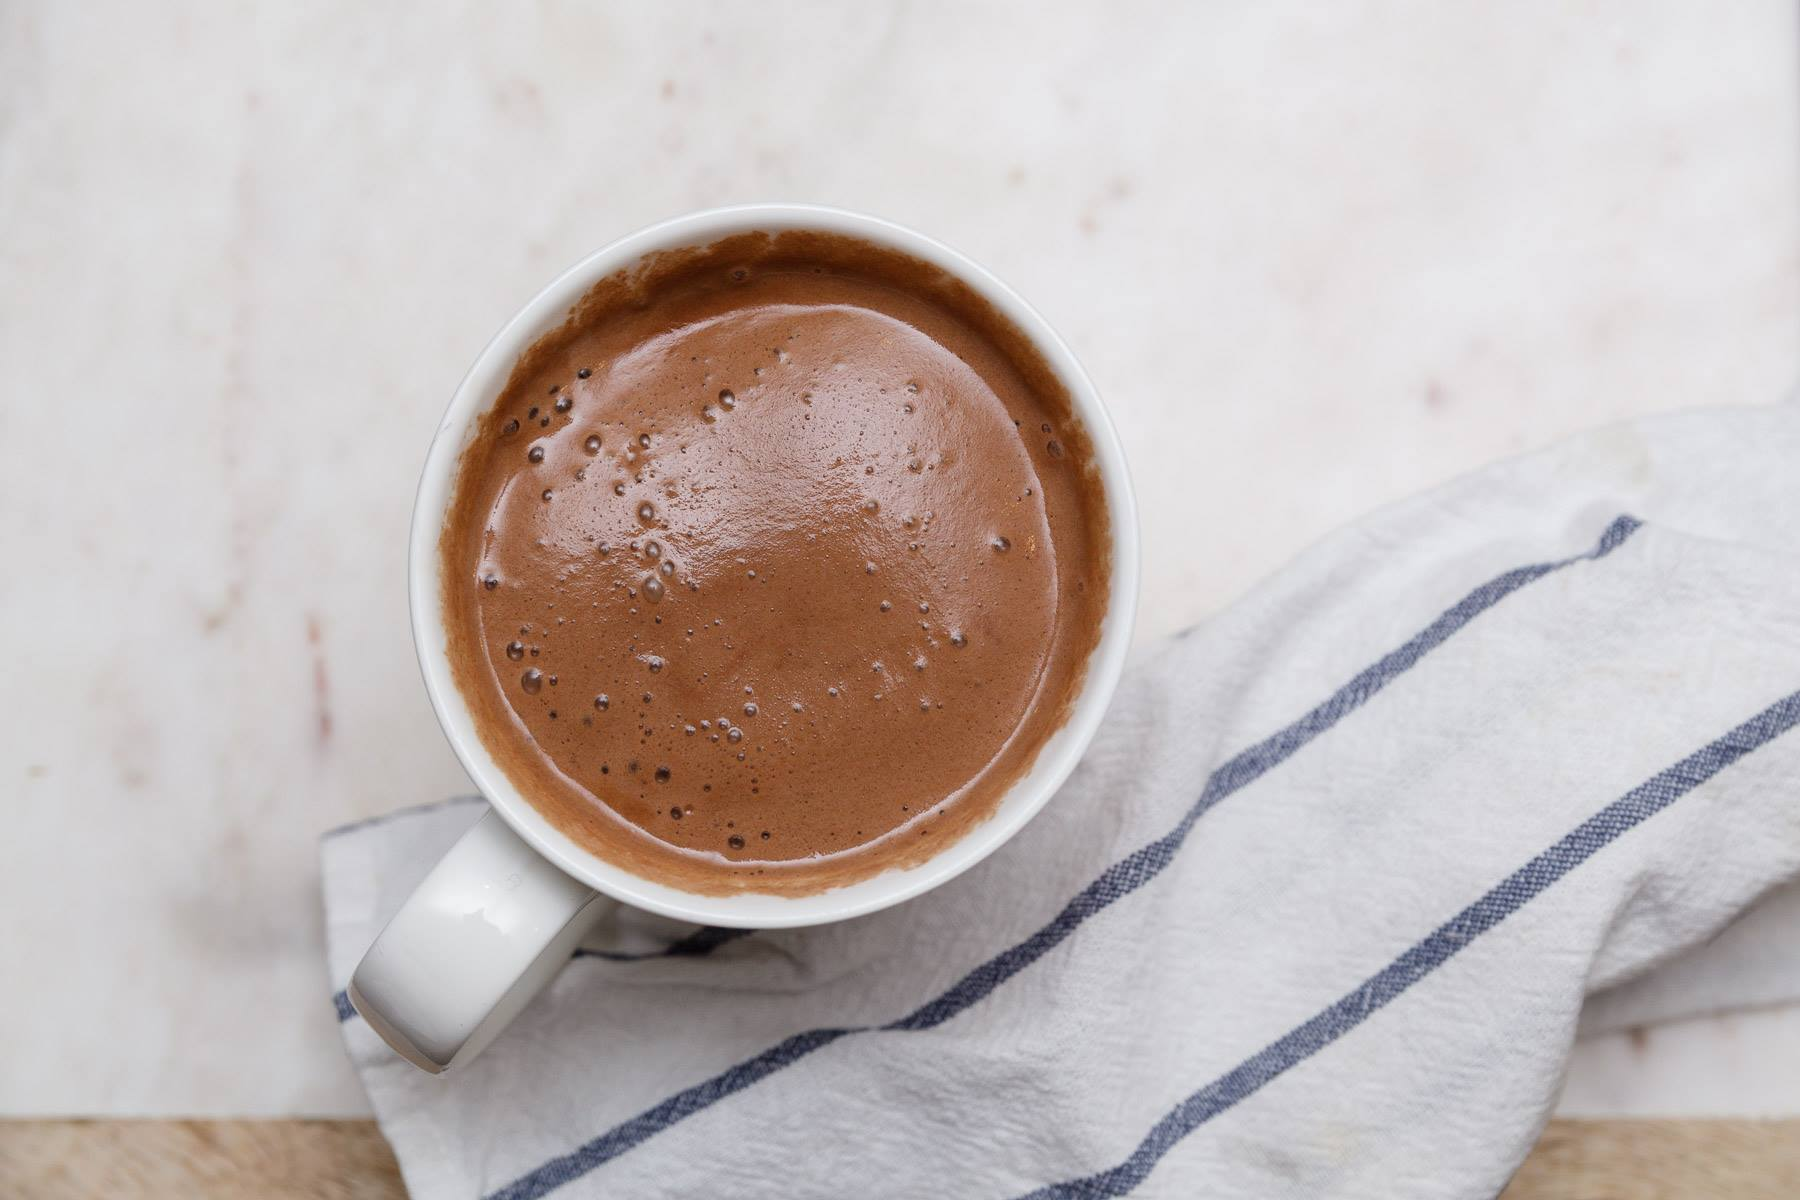 Dairy Free Hot Chocolate by The Healthful Model